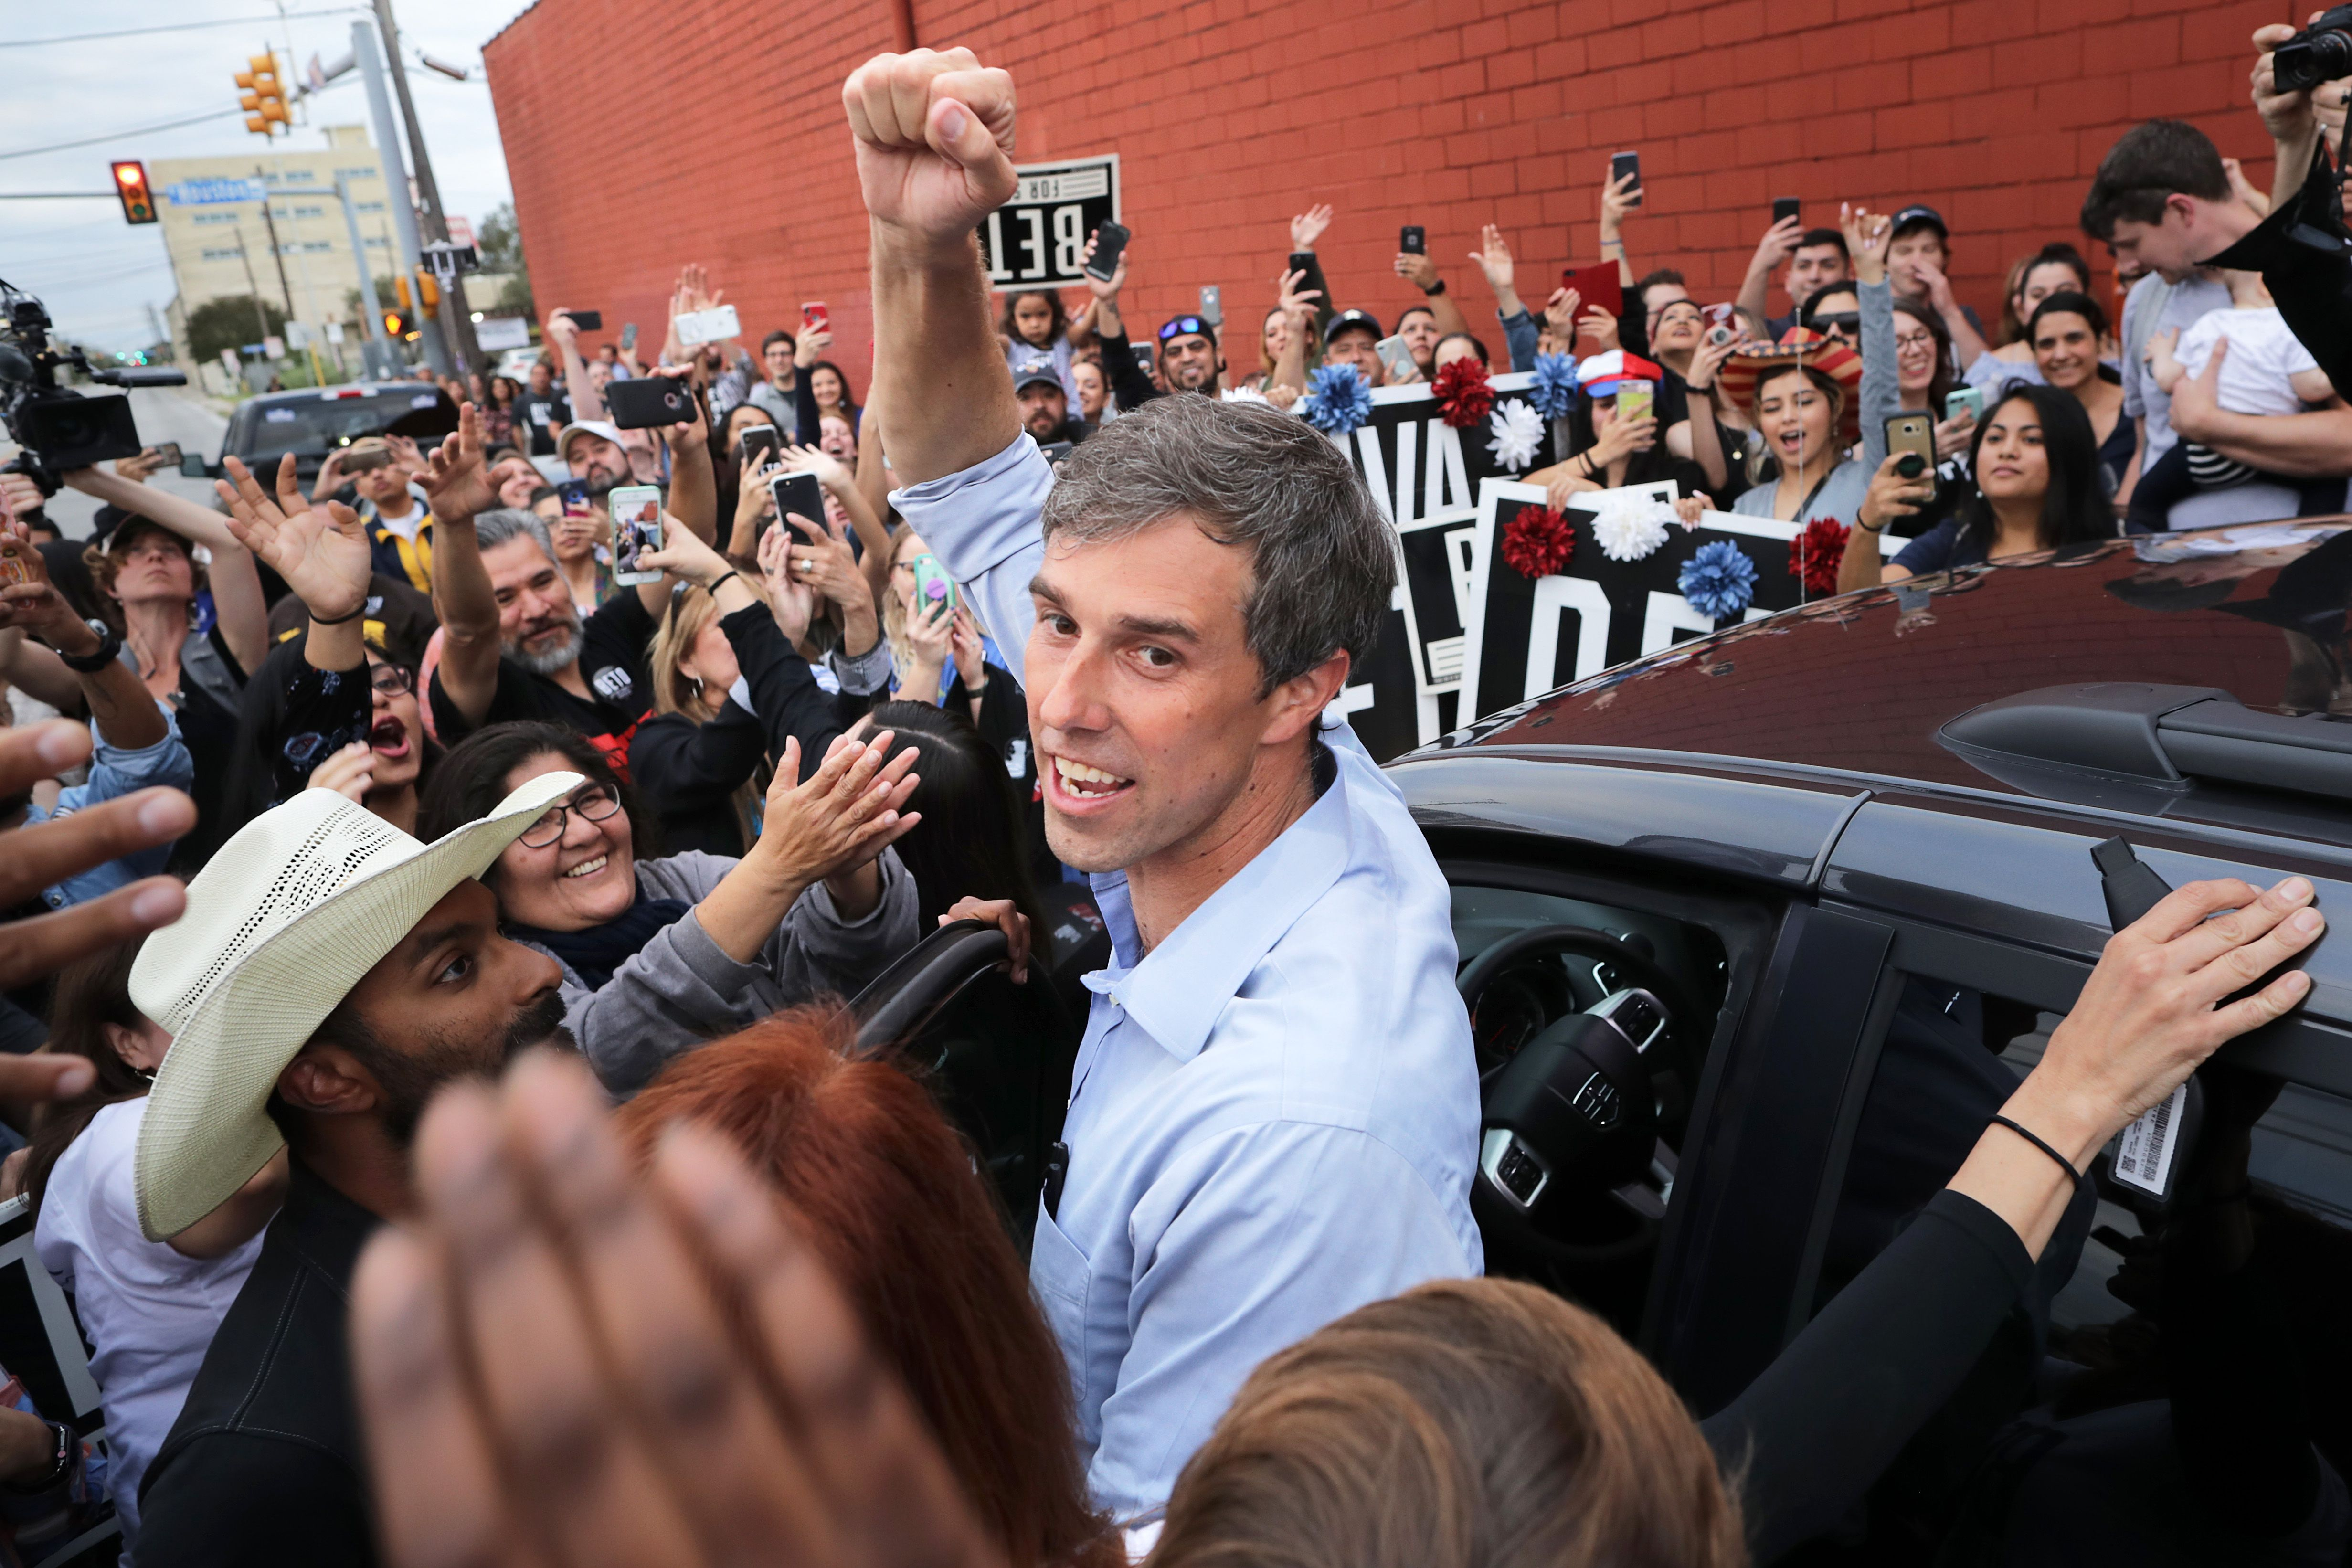 Beto O'Rourke Is Running for President in 2020. Here's Where He Stands on 9 Important Issues.